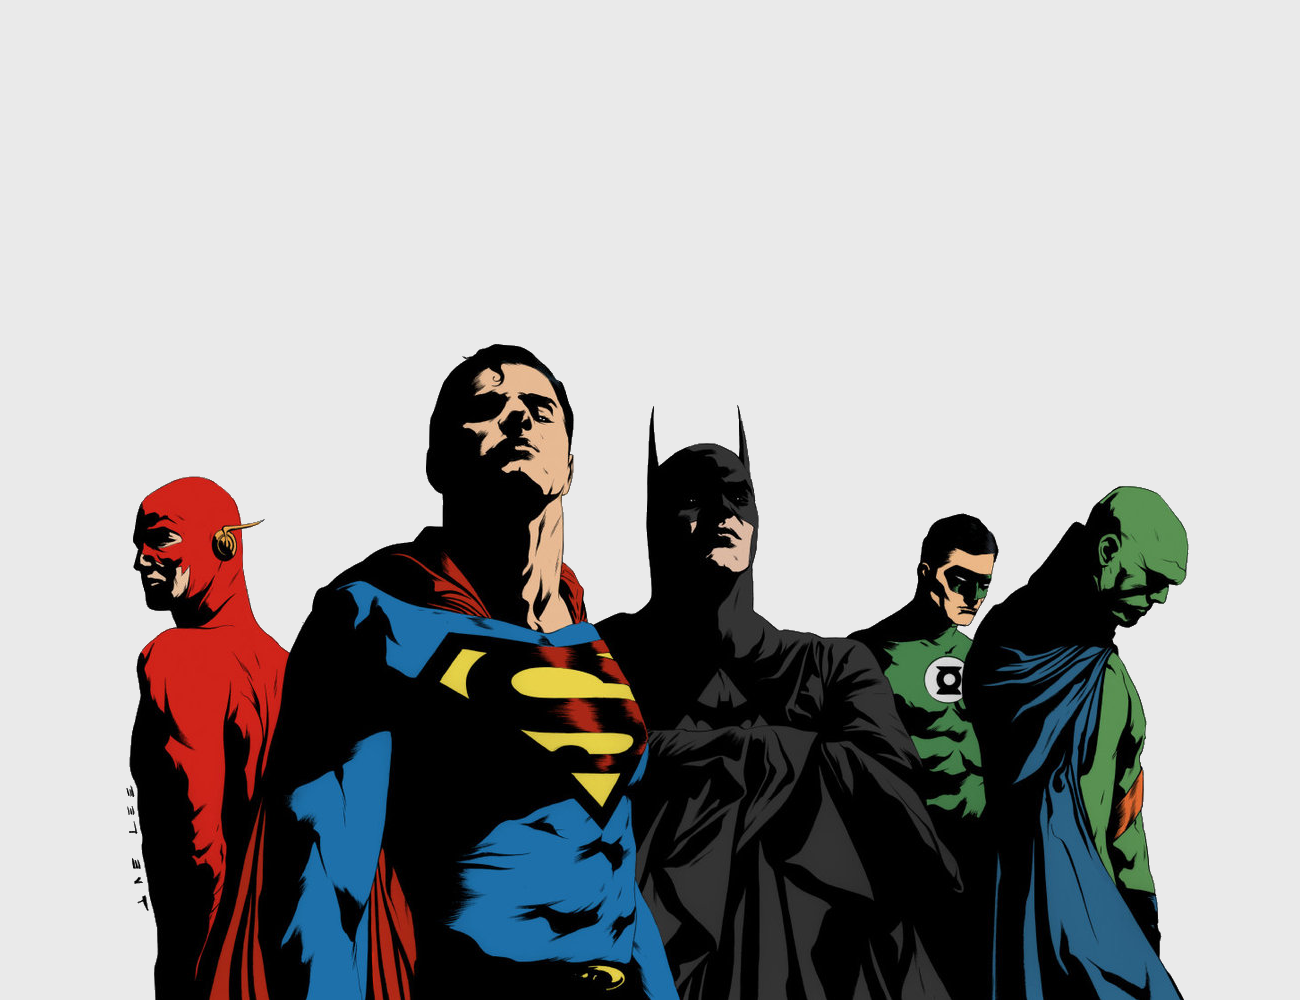 Superhero wallpaper and background image 1300x1000 id 296995 wallpaper abyss - Superhero background wallpaper ...